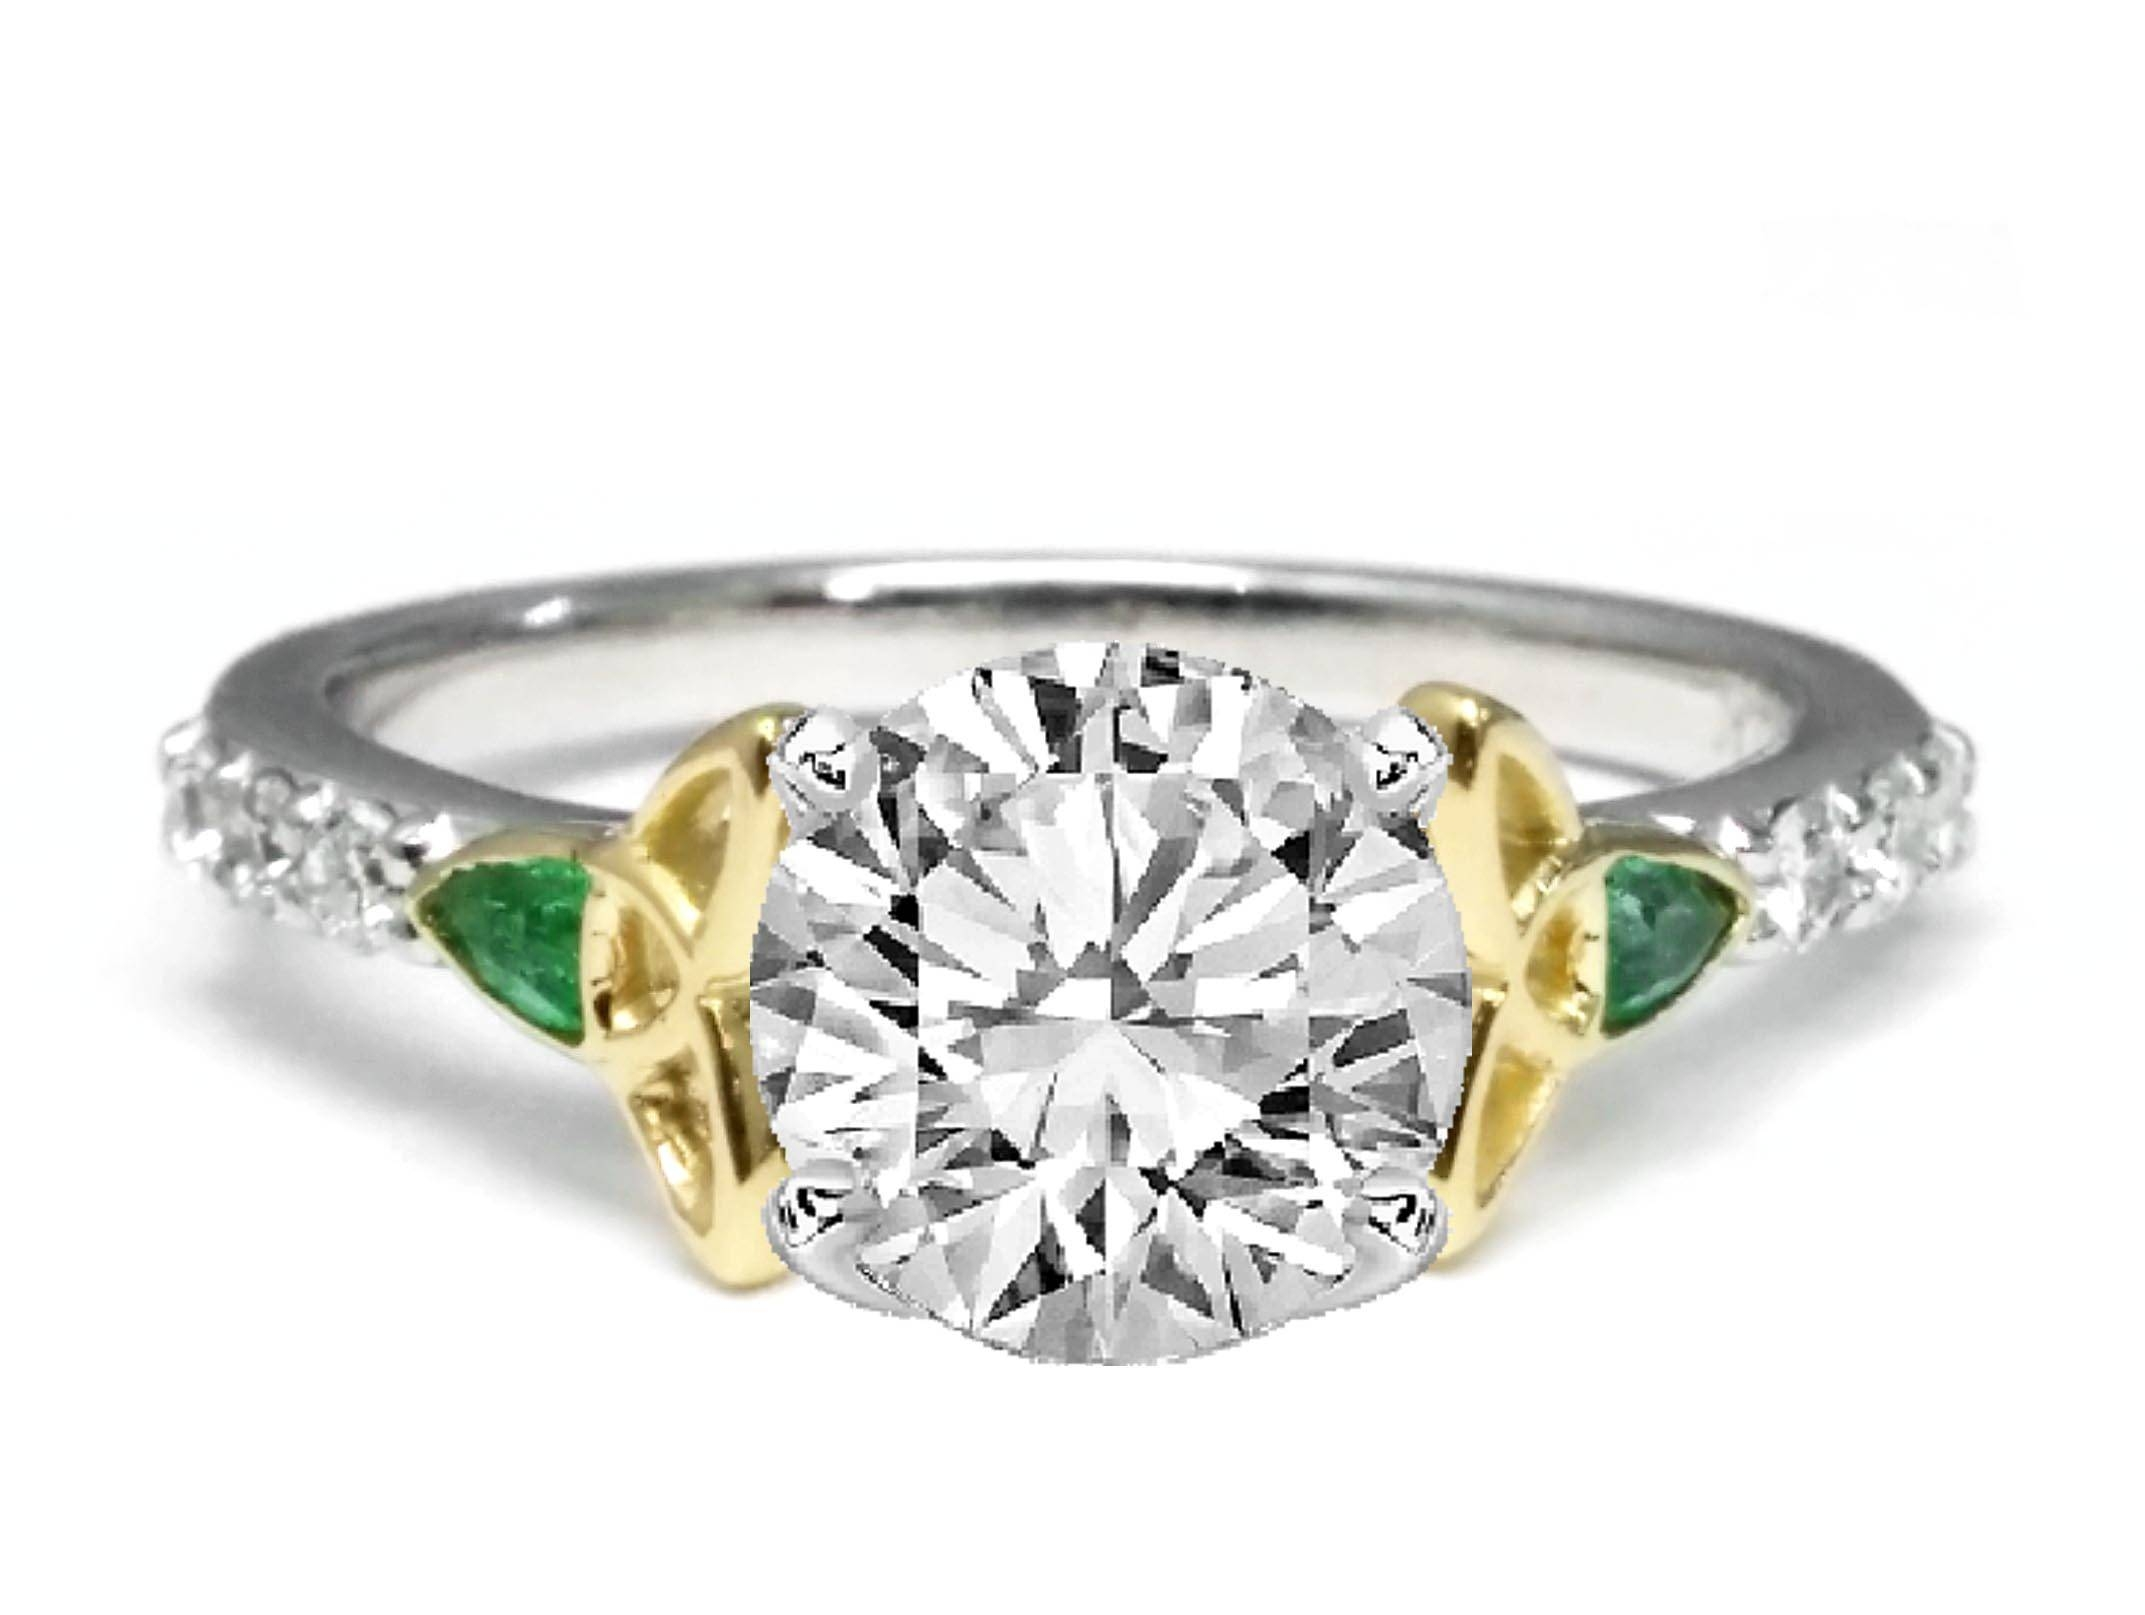 Celtic – Engagement Rings From Mdc Diamonds Nyc Throughout Celtic Knot Engagement Ring Setting (View 7 of 15)